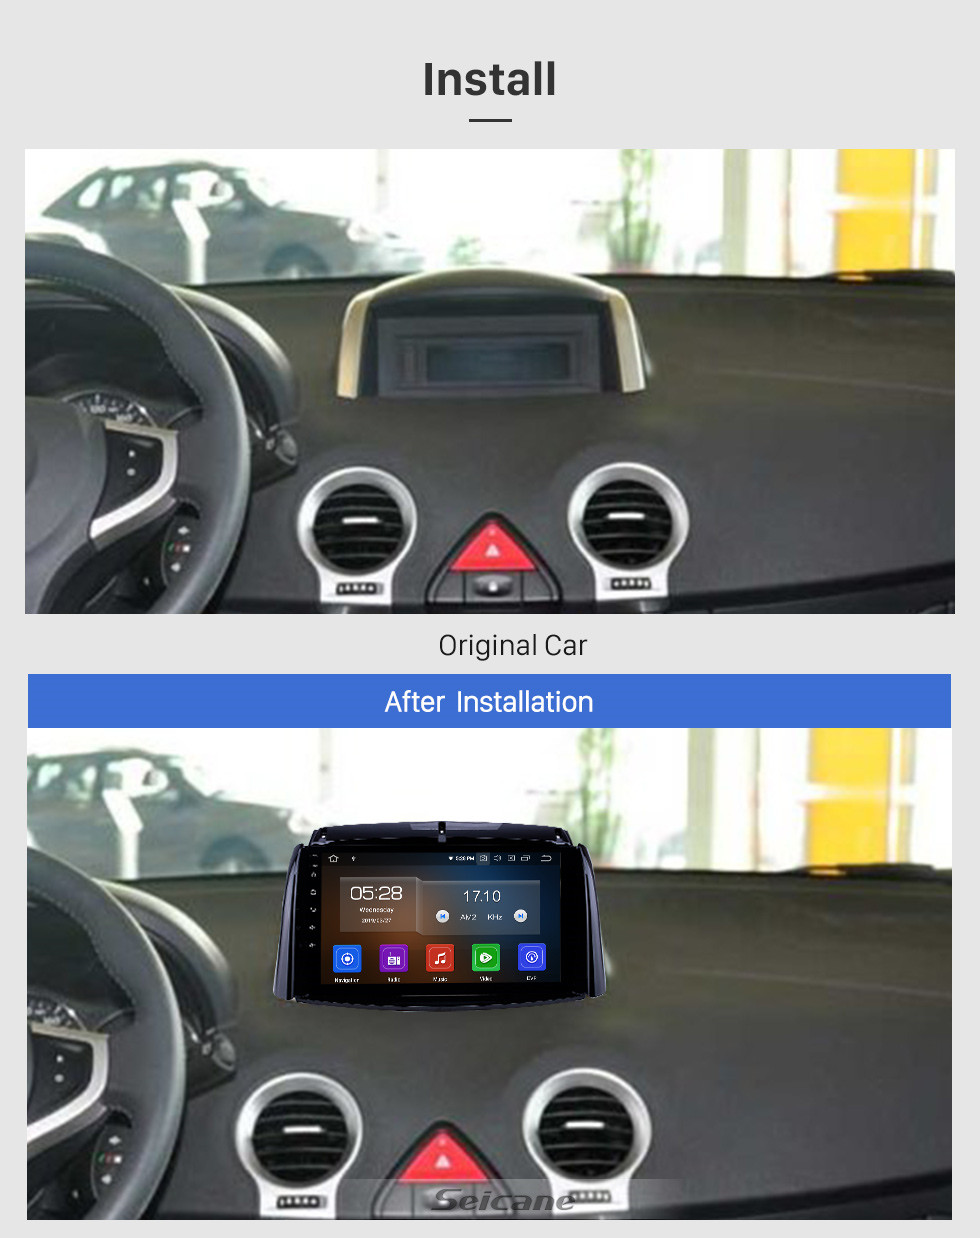 Seicane 2009-2016 Renault Koleos Android 9.0 9 inch GPS Navigation Radio Bluetooth HD Touchscreen WIFI USB Carplay support Digital TV